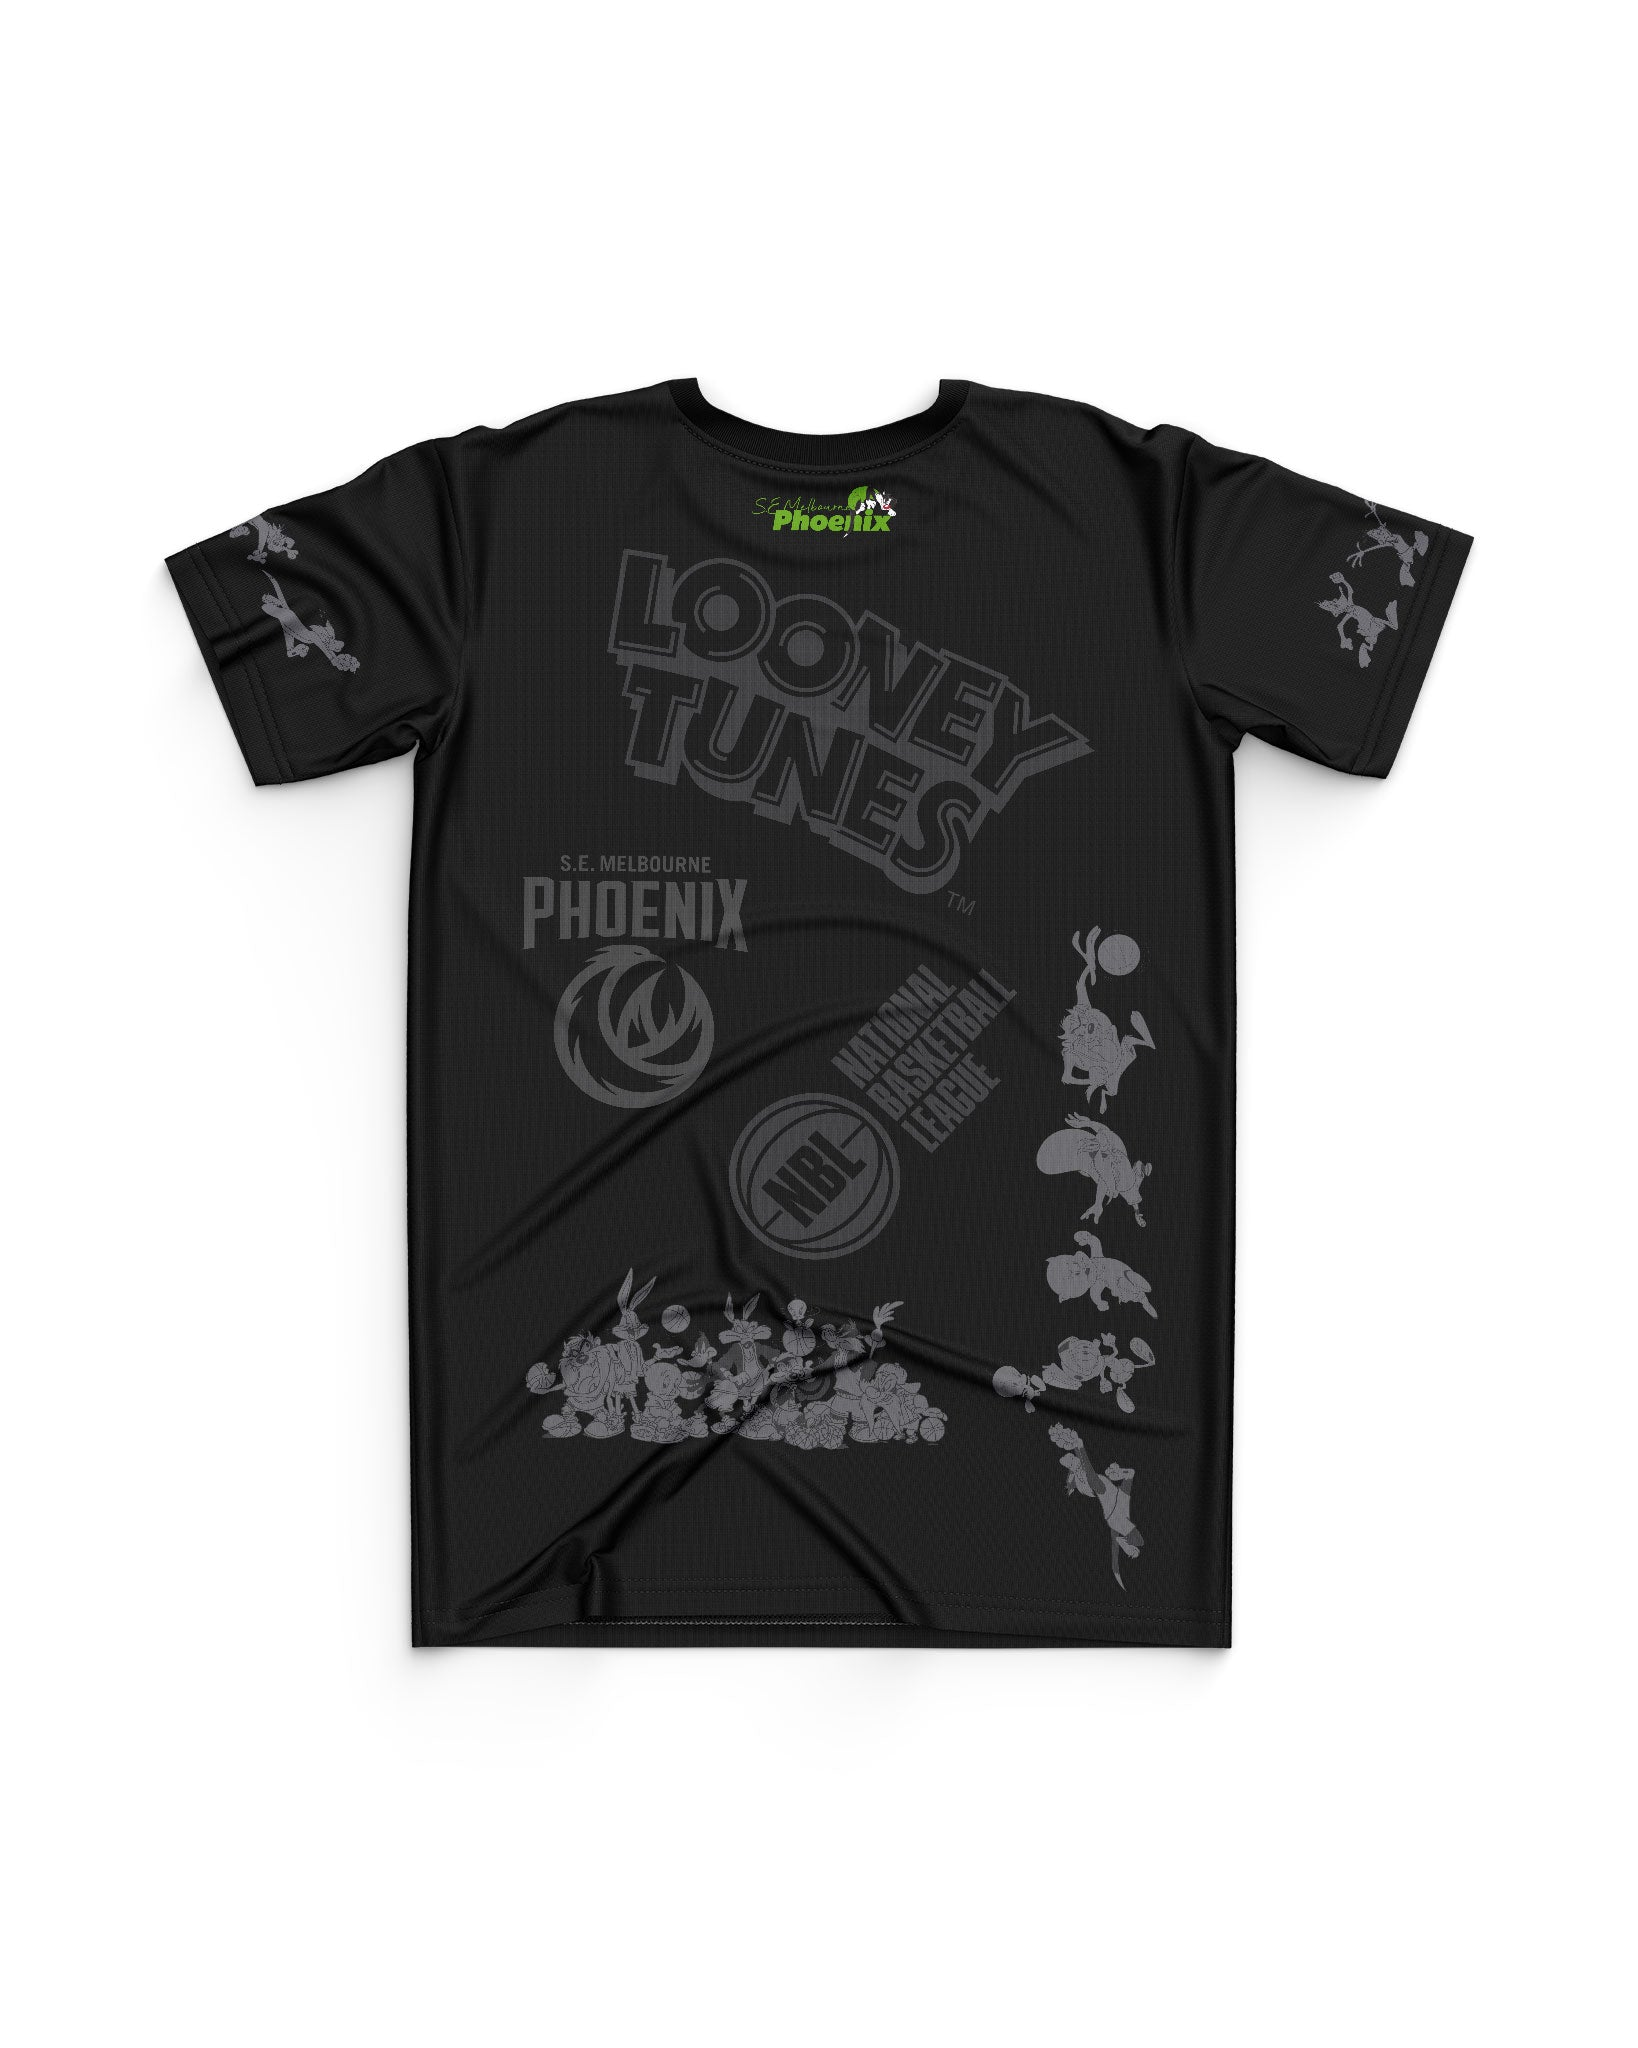 S.E. Melbourne Phoenix 20/21 Looney Tunes Youth Mono Tee